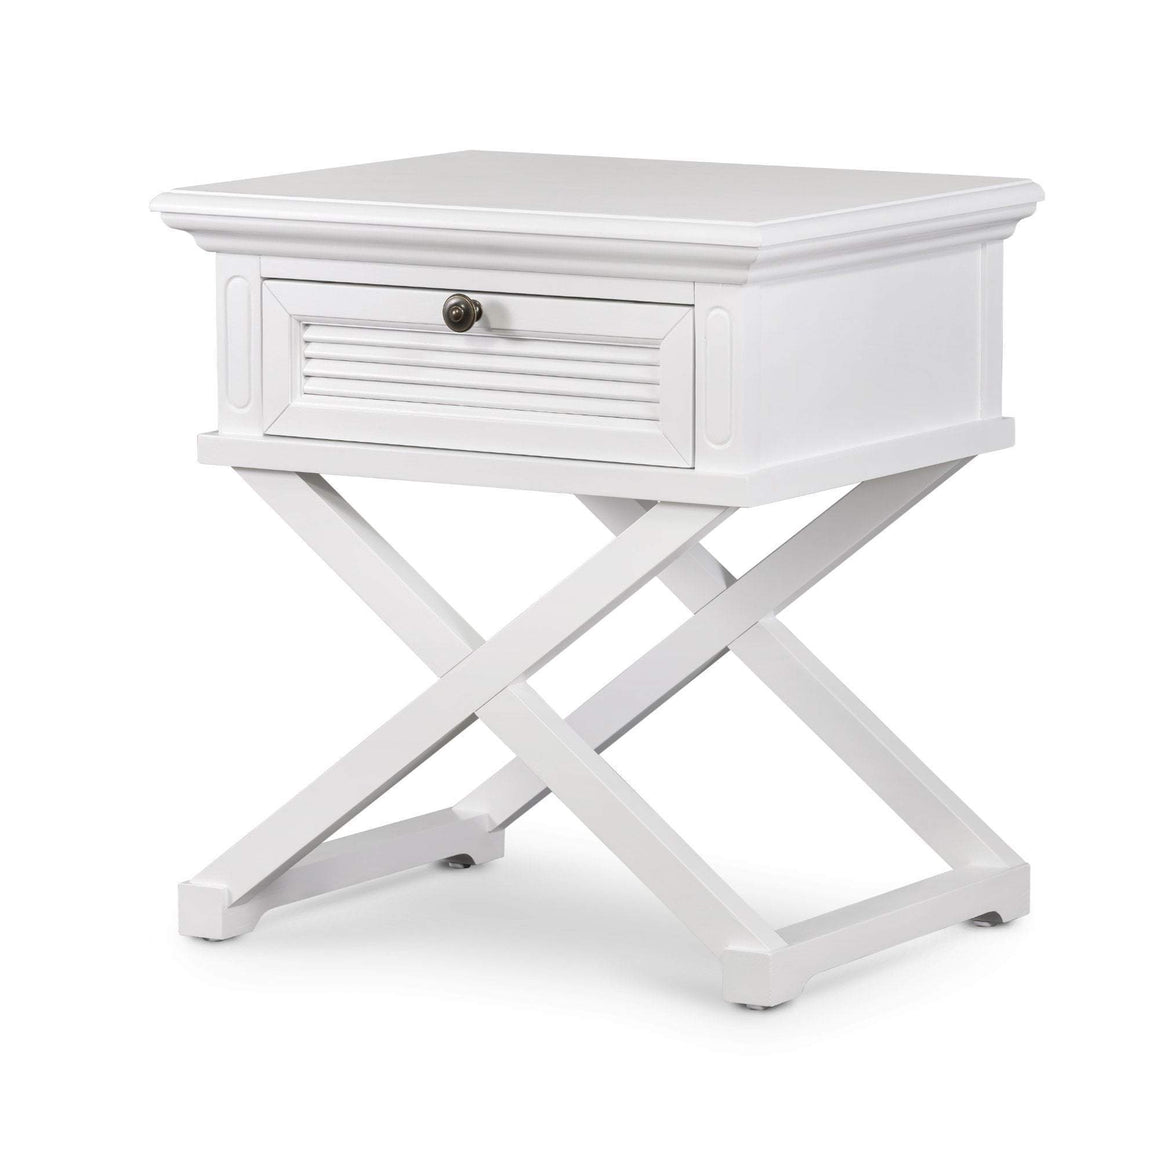 WEST BEACH SIDE TABLE WHITE GRAIN